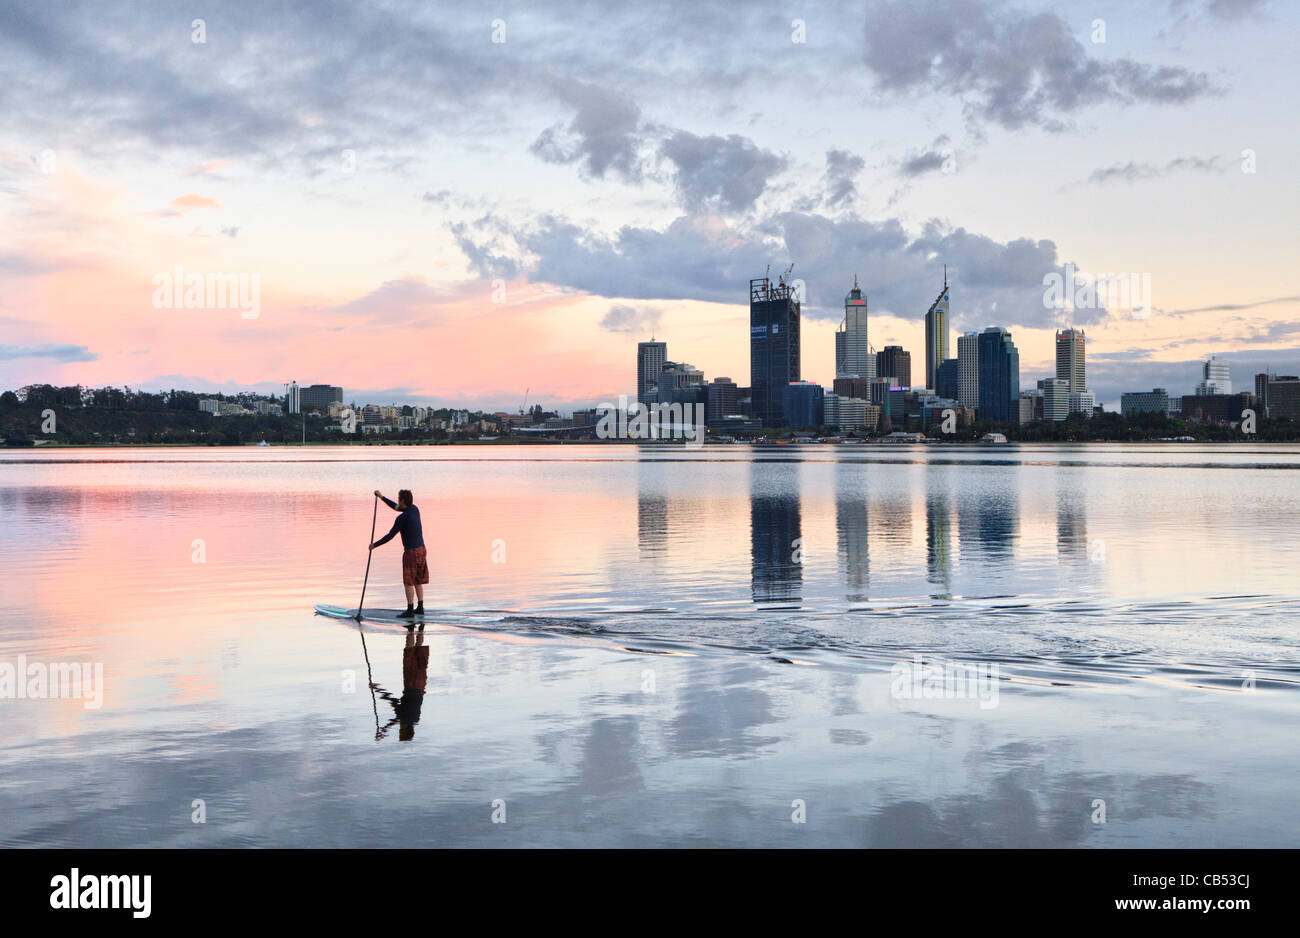 Paddle surfer on the river at sunrise with the city skyline in the distance. - Stock Image